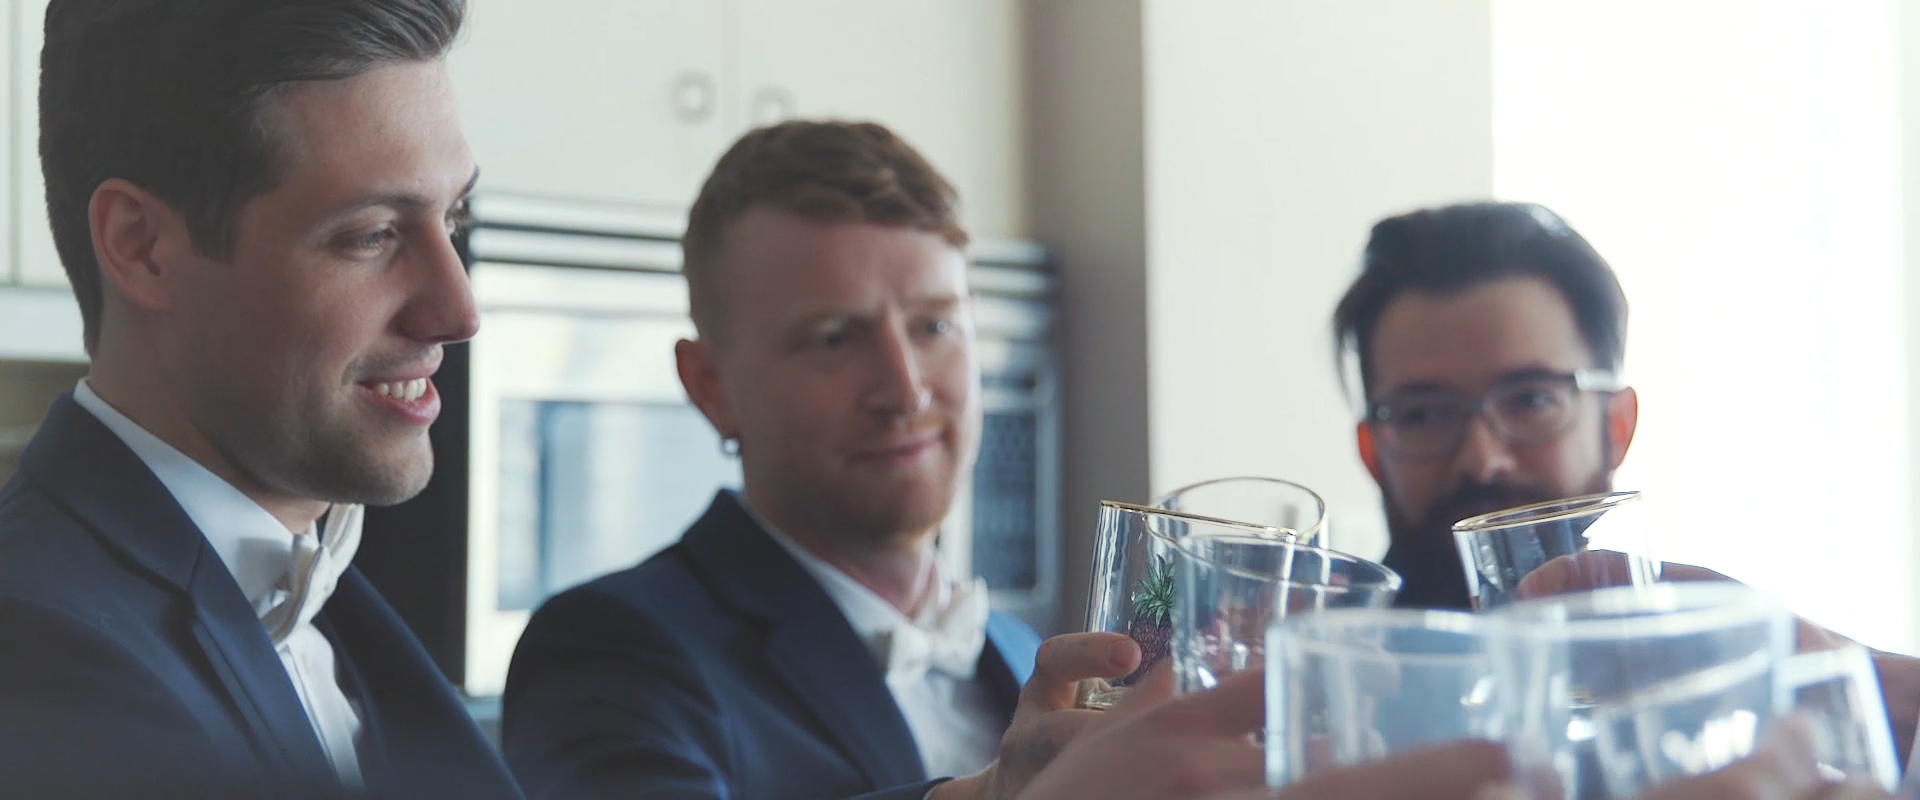 An image of a groom sharing a drink with his groomsmen on his wedding day; taken from a Toronto Wedding Video